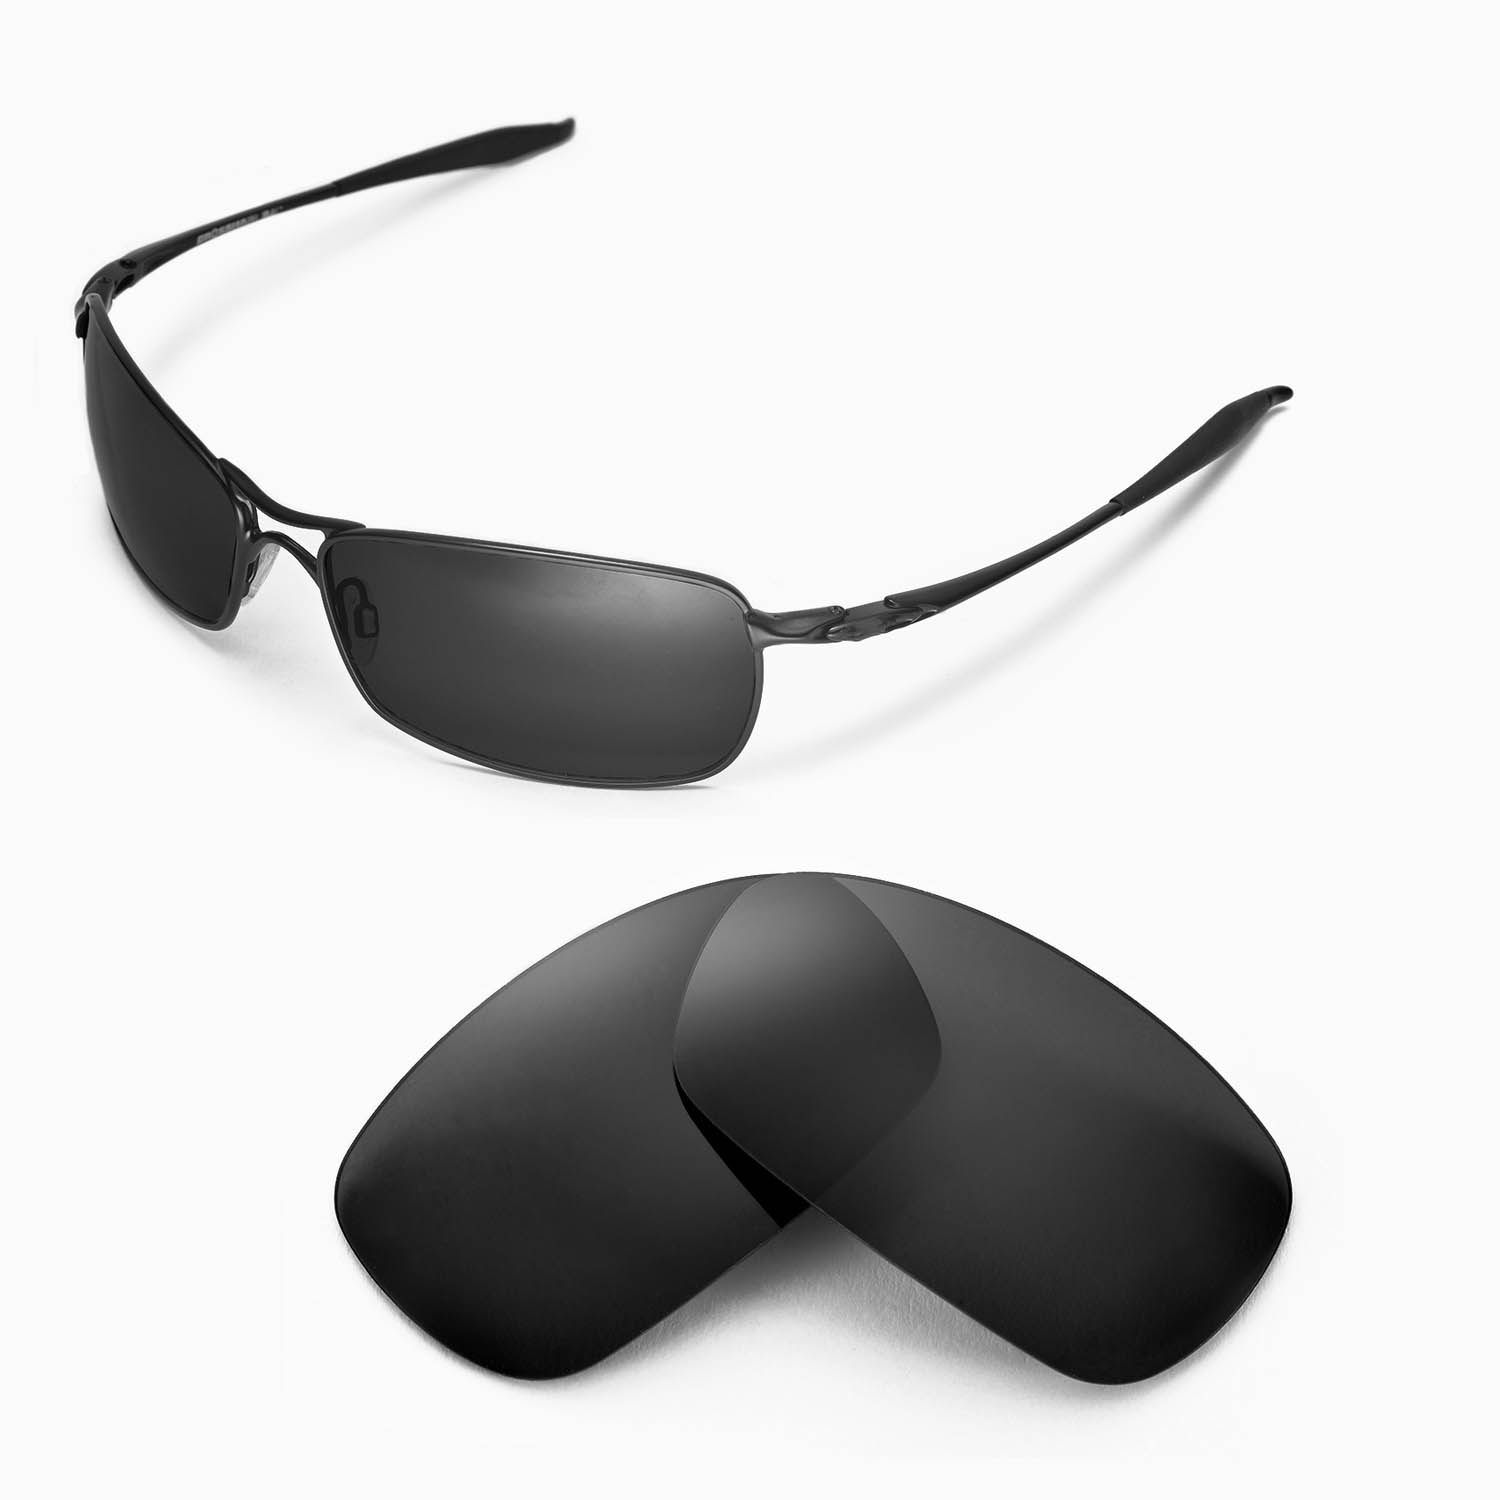 Oakley Crosshair Sunglasses  new wl polarized black replacement lenses for oakley crosshair 2 0